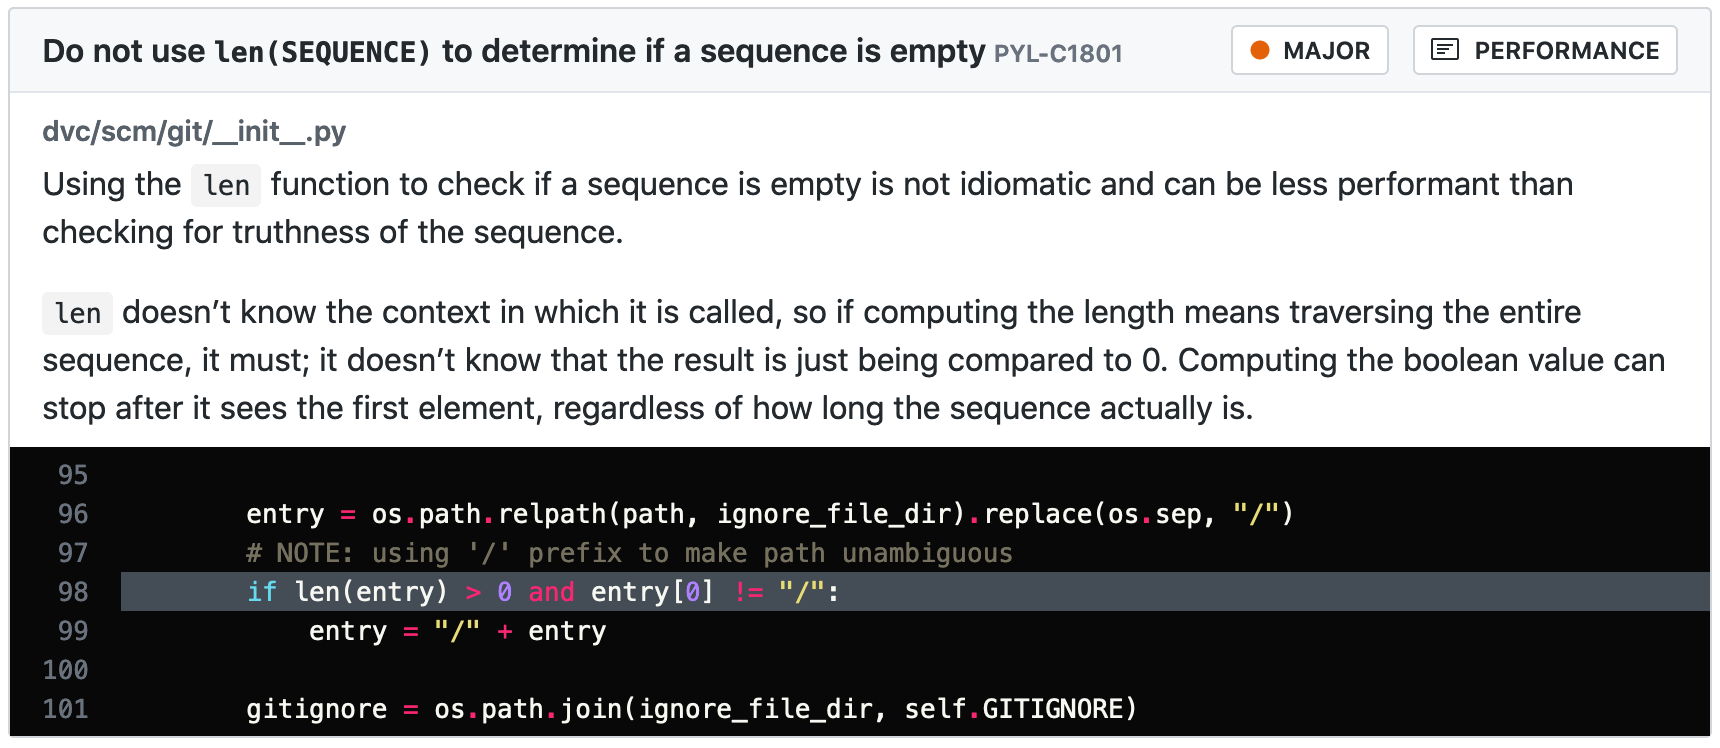 Don't use len(SEQUENCE) to determine if a sequence is empty